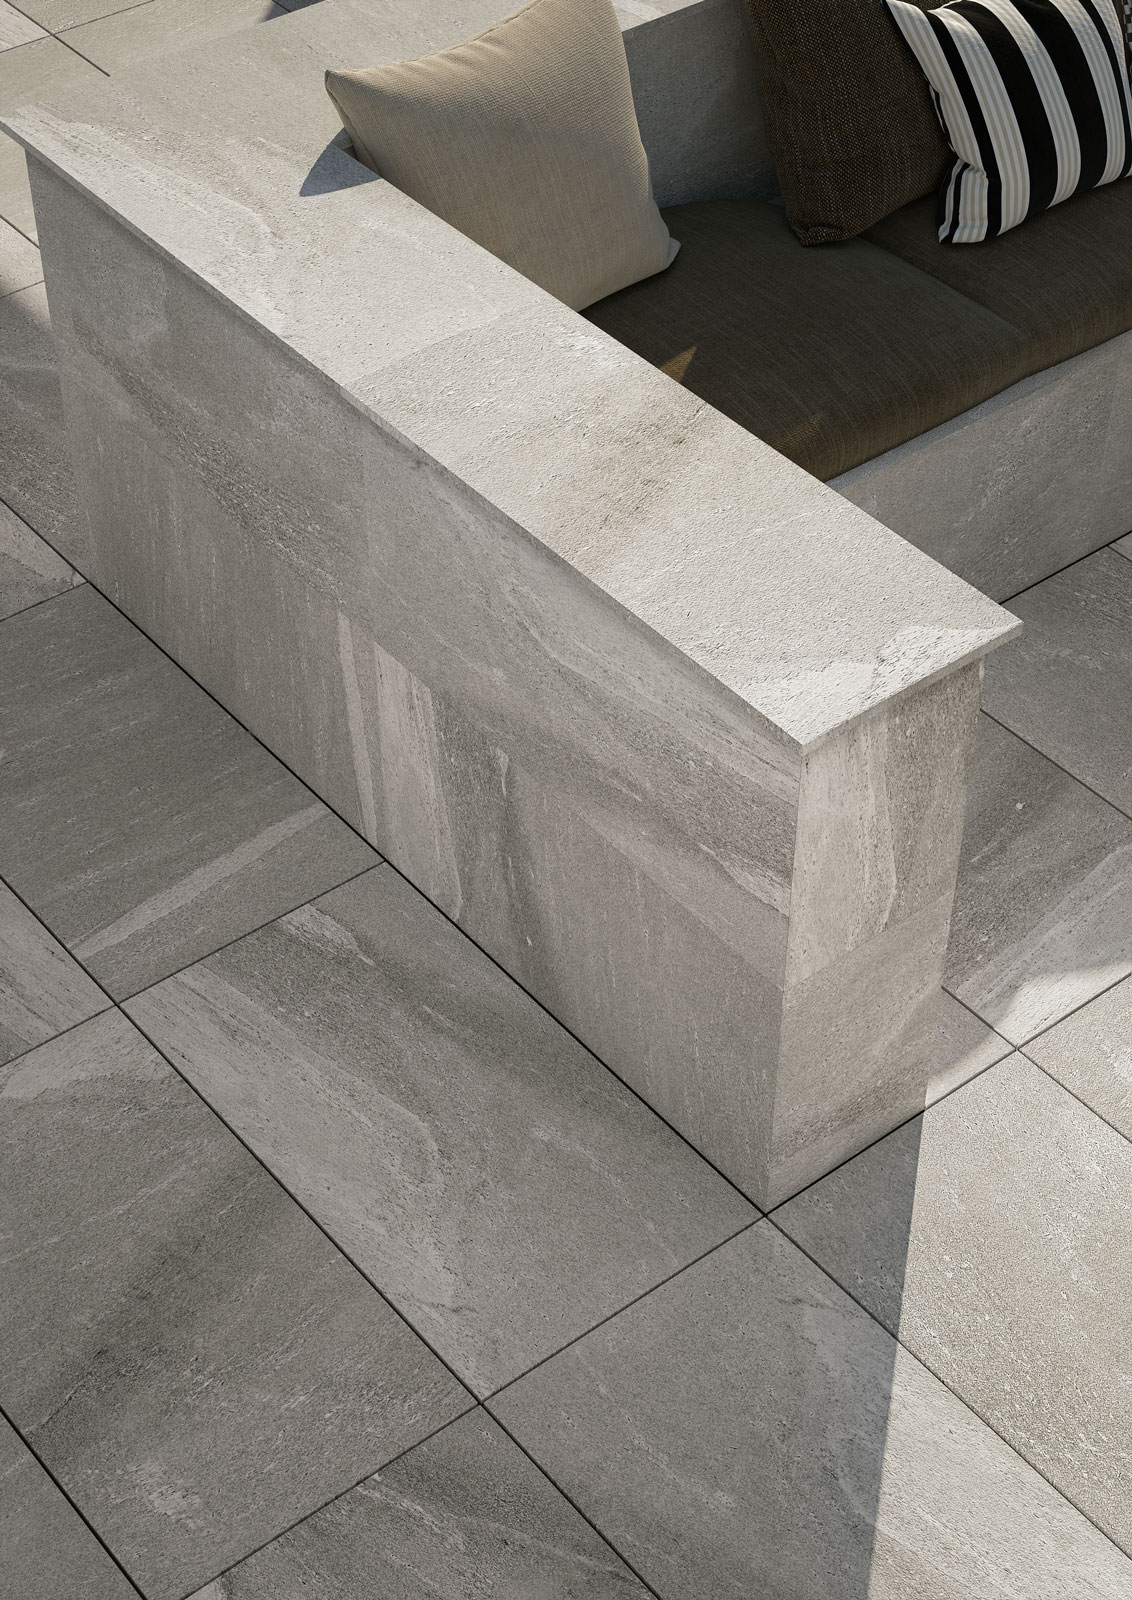 Exterior Stone Tile Flooring : Outdoor tiles gardens and terraces marazzi